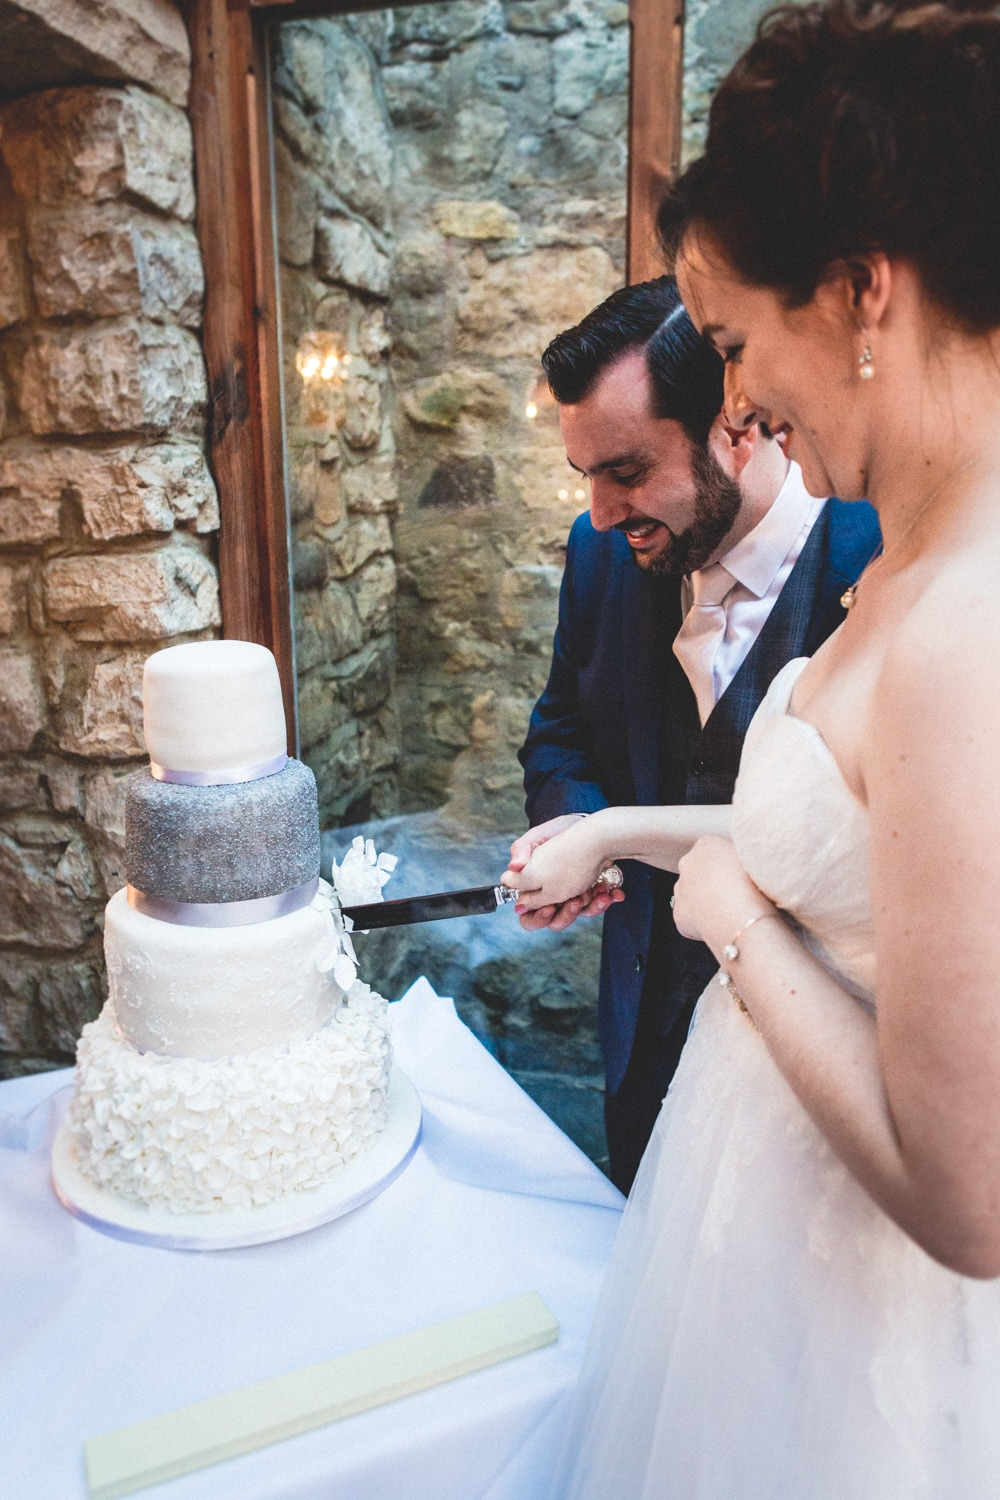 Cutting the cake - Wedding photography by Yorkshire photographer, Mat Robinson